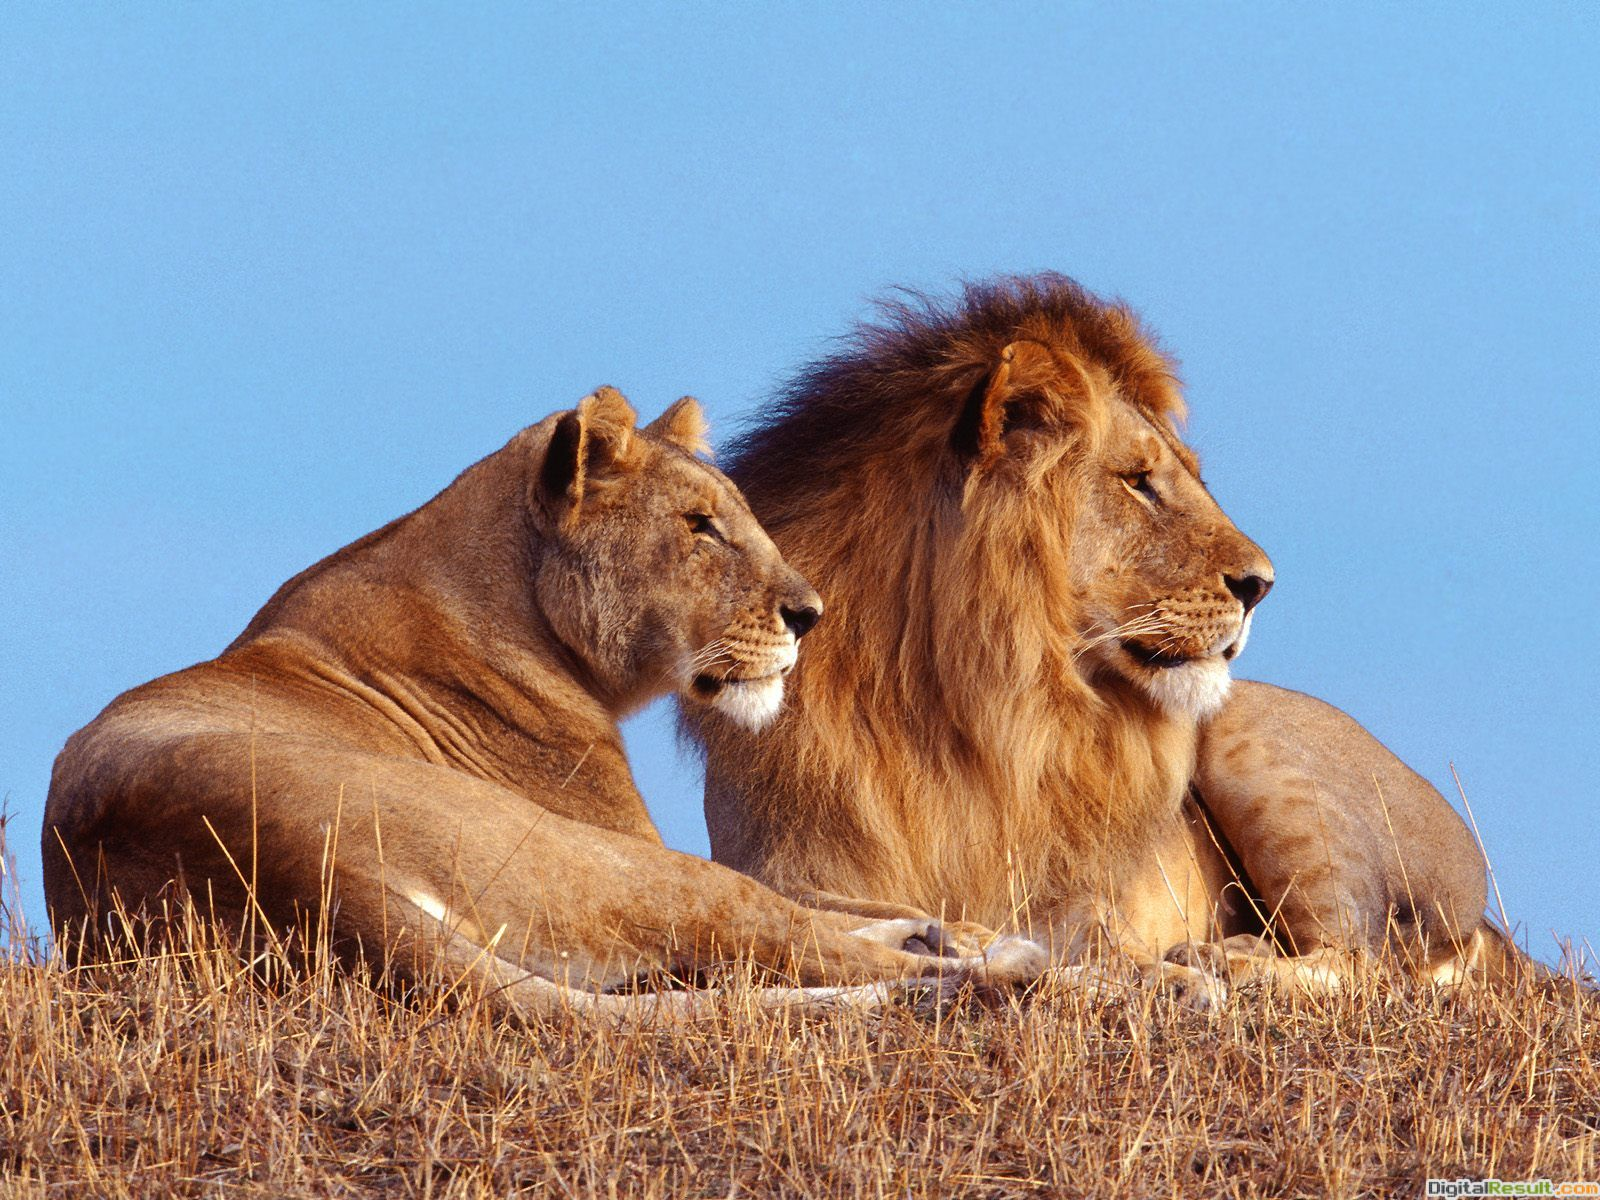 of lions wallpapers hd hd wallpapers animal pictures amazing lion